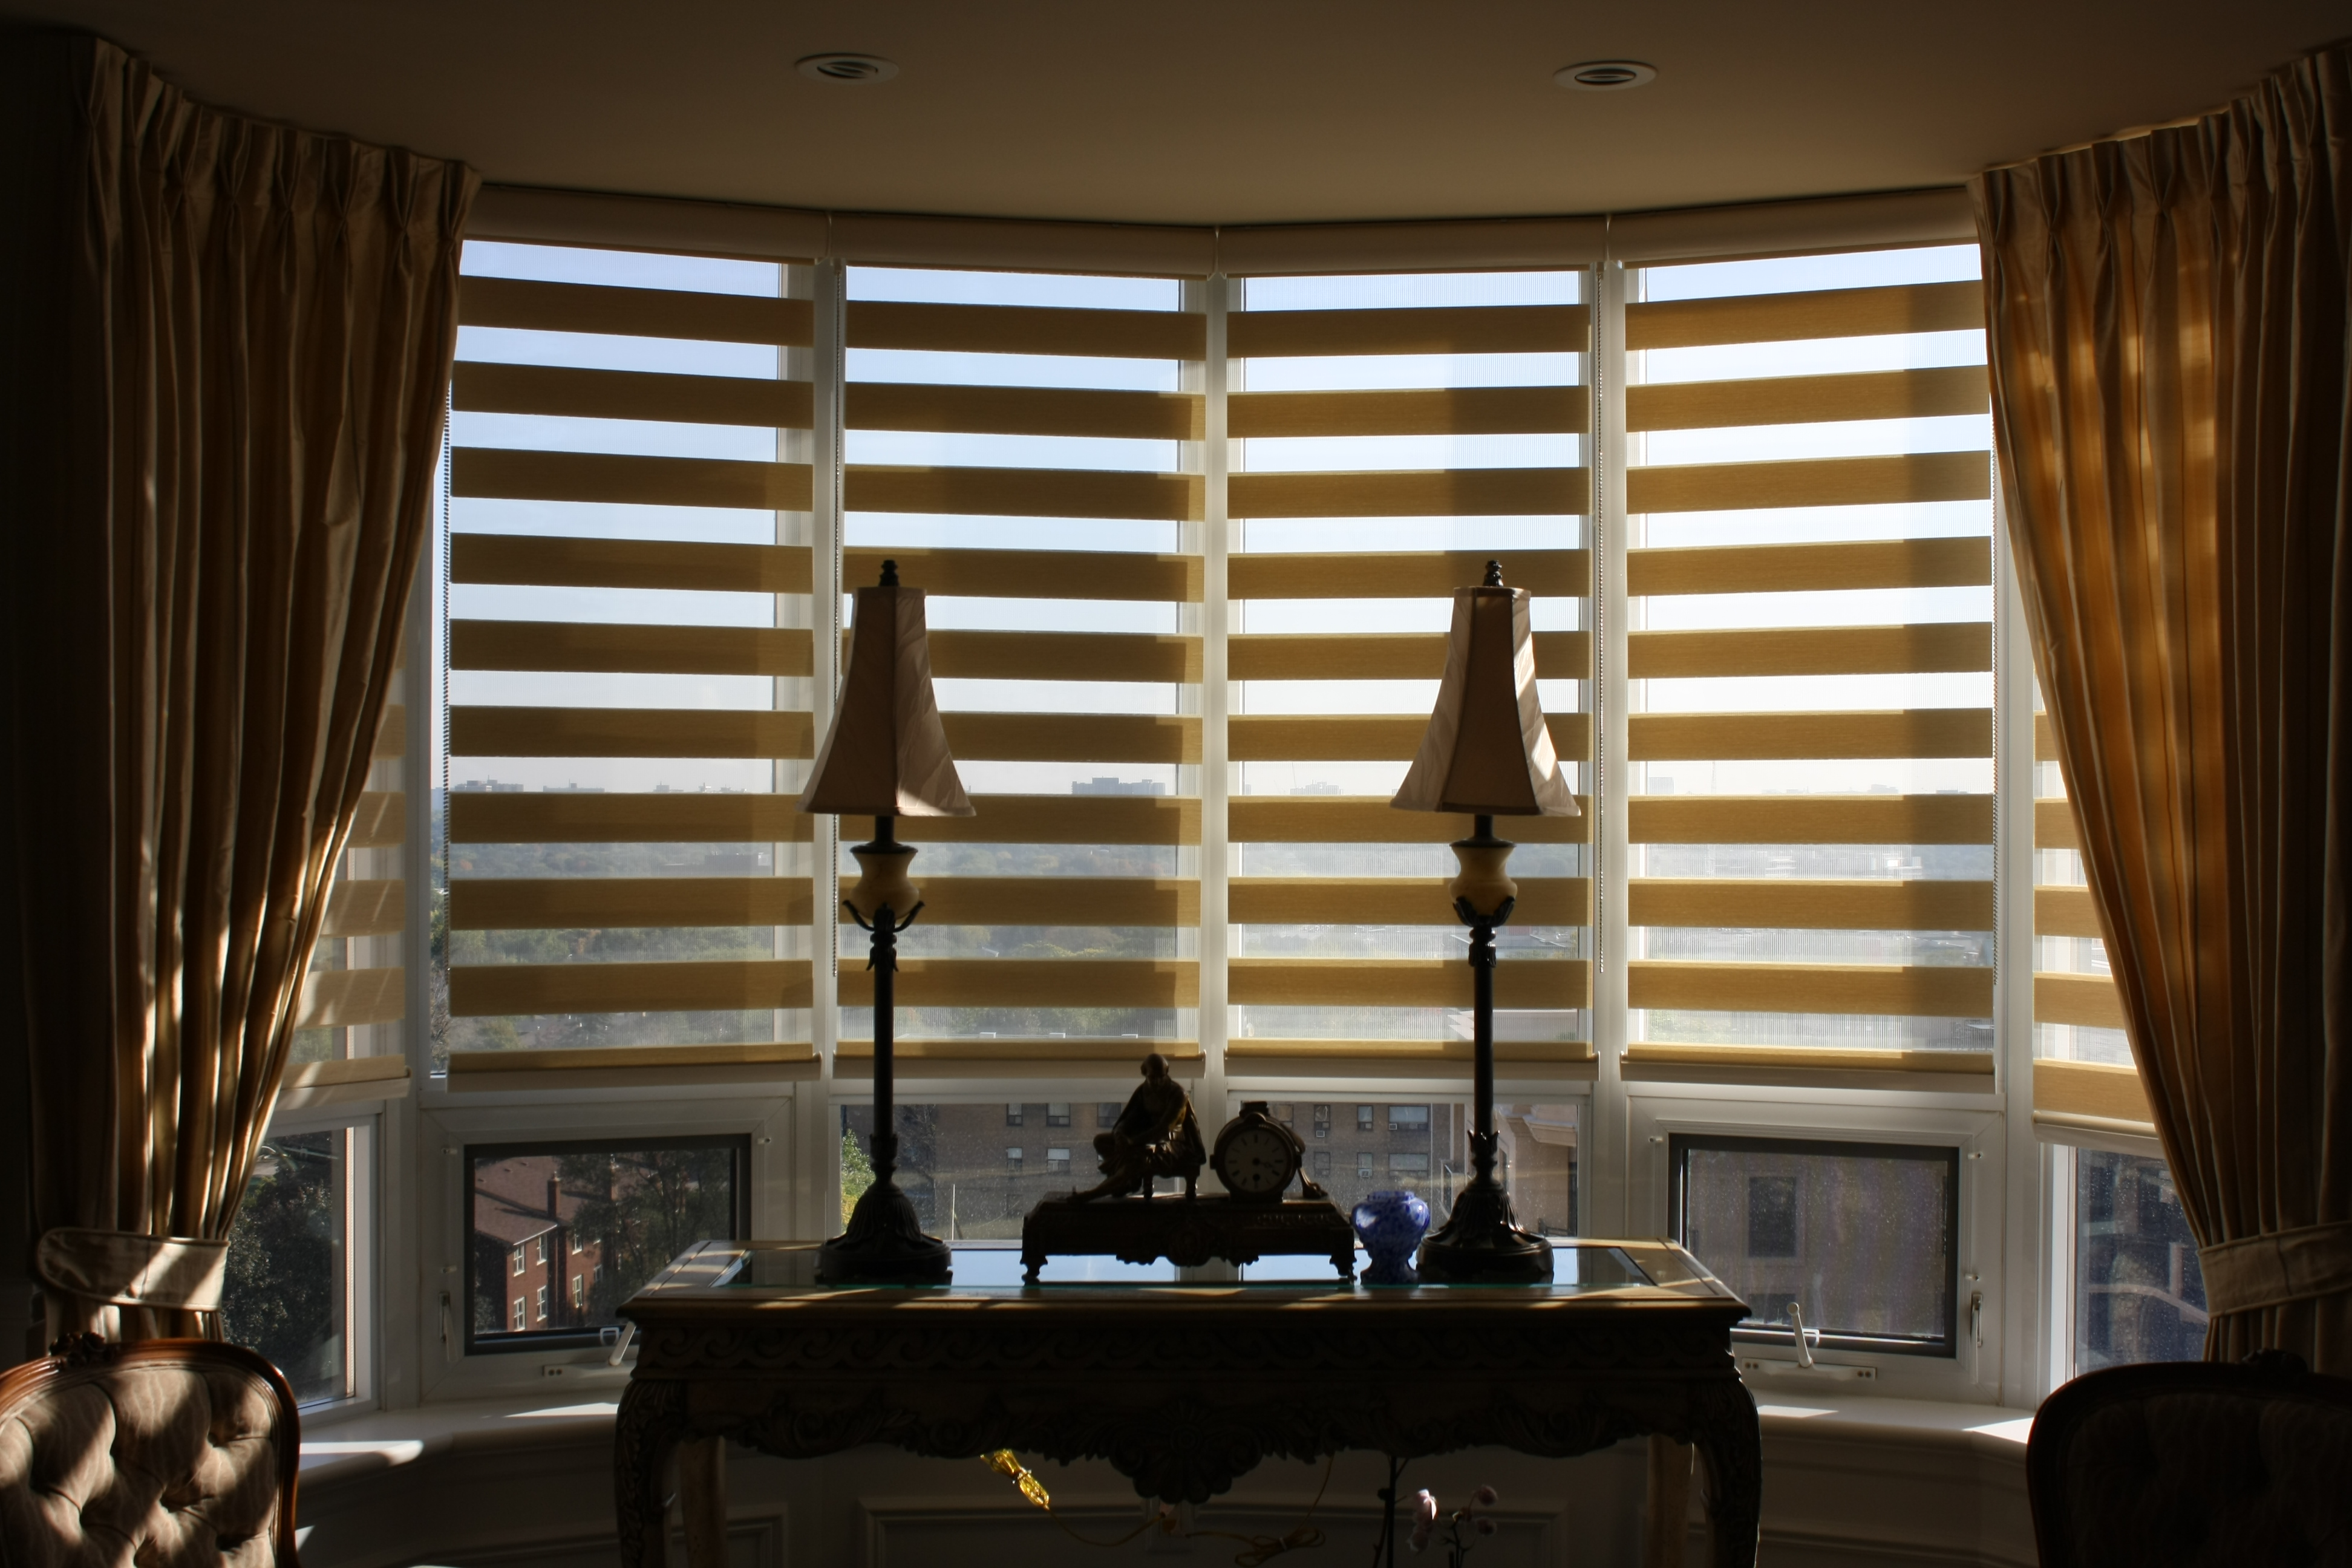 about window us sample blinds wellgate customer design installations